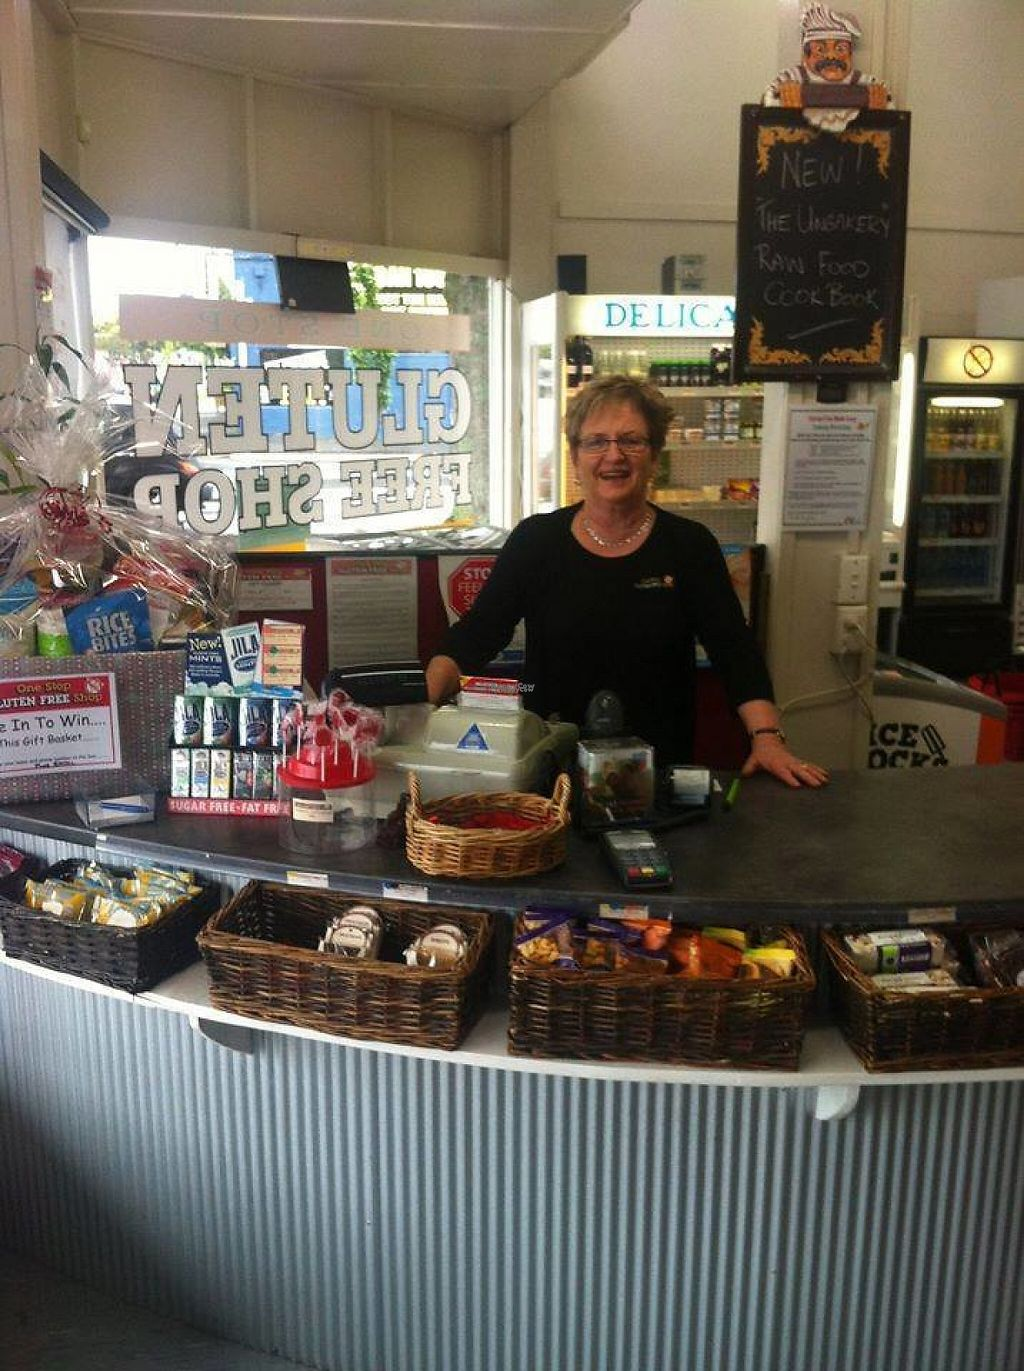 """Photo of Gluten & Allergy Free Shop  by <a href=""""/members/profile/AvrilTkd"""">AvrilTkd</a> <br/>The owner herself! <br/> December 30, 2016  - <a href='/contact/abuse/image/84432/206371'>Report</a>"""